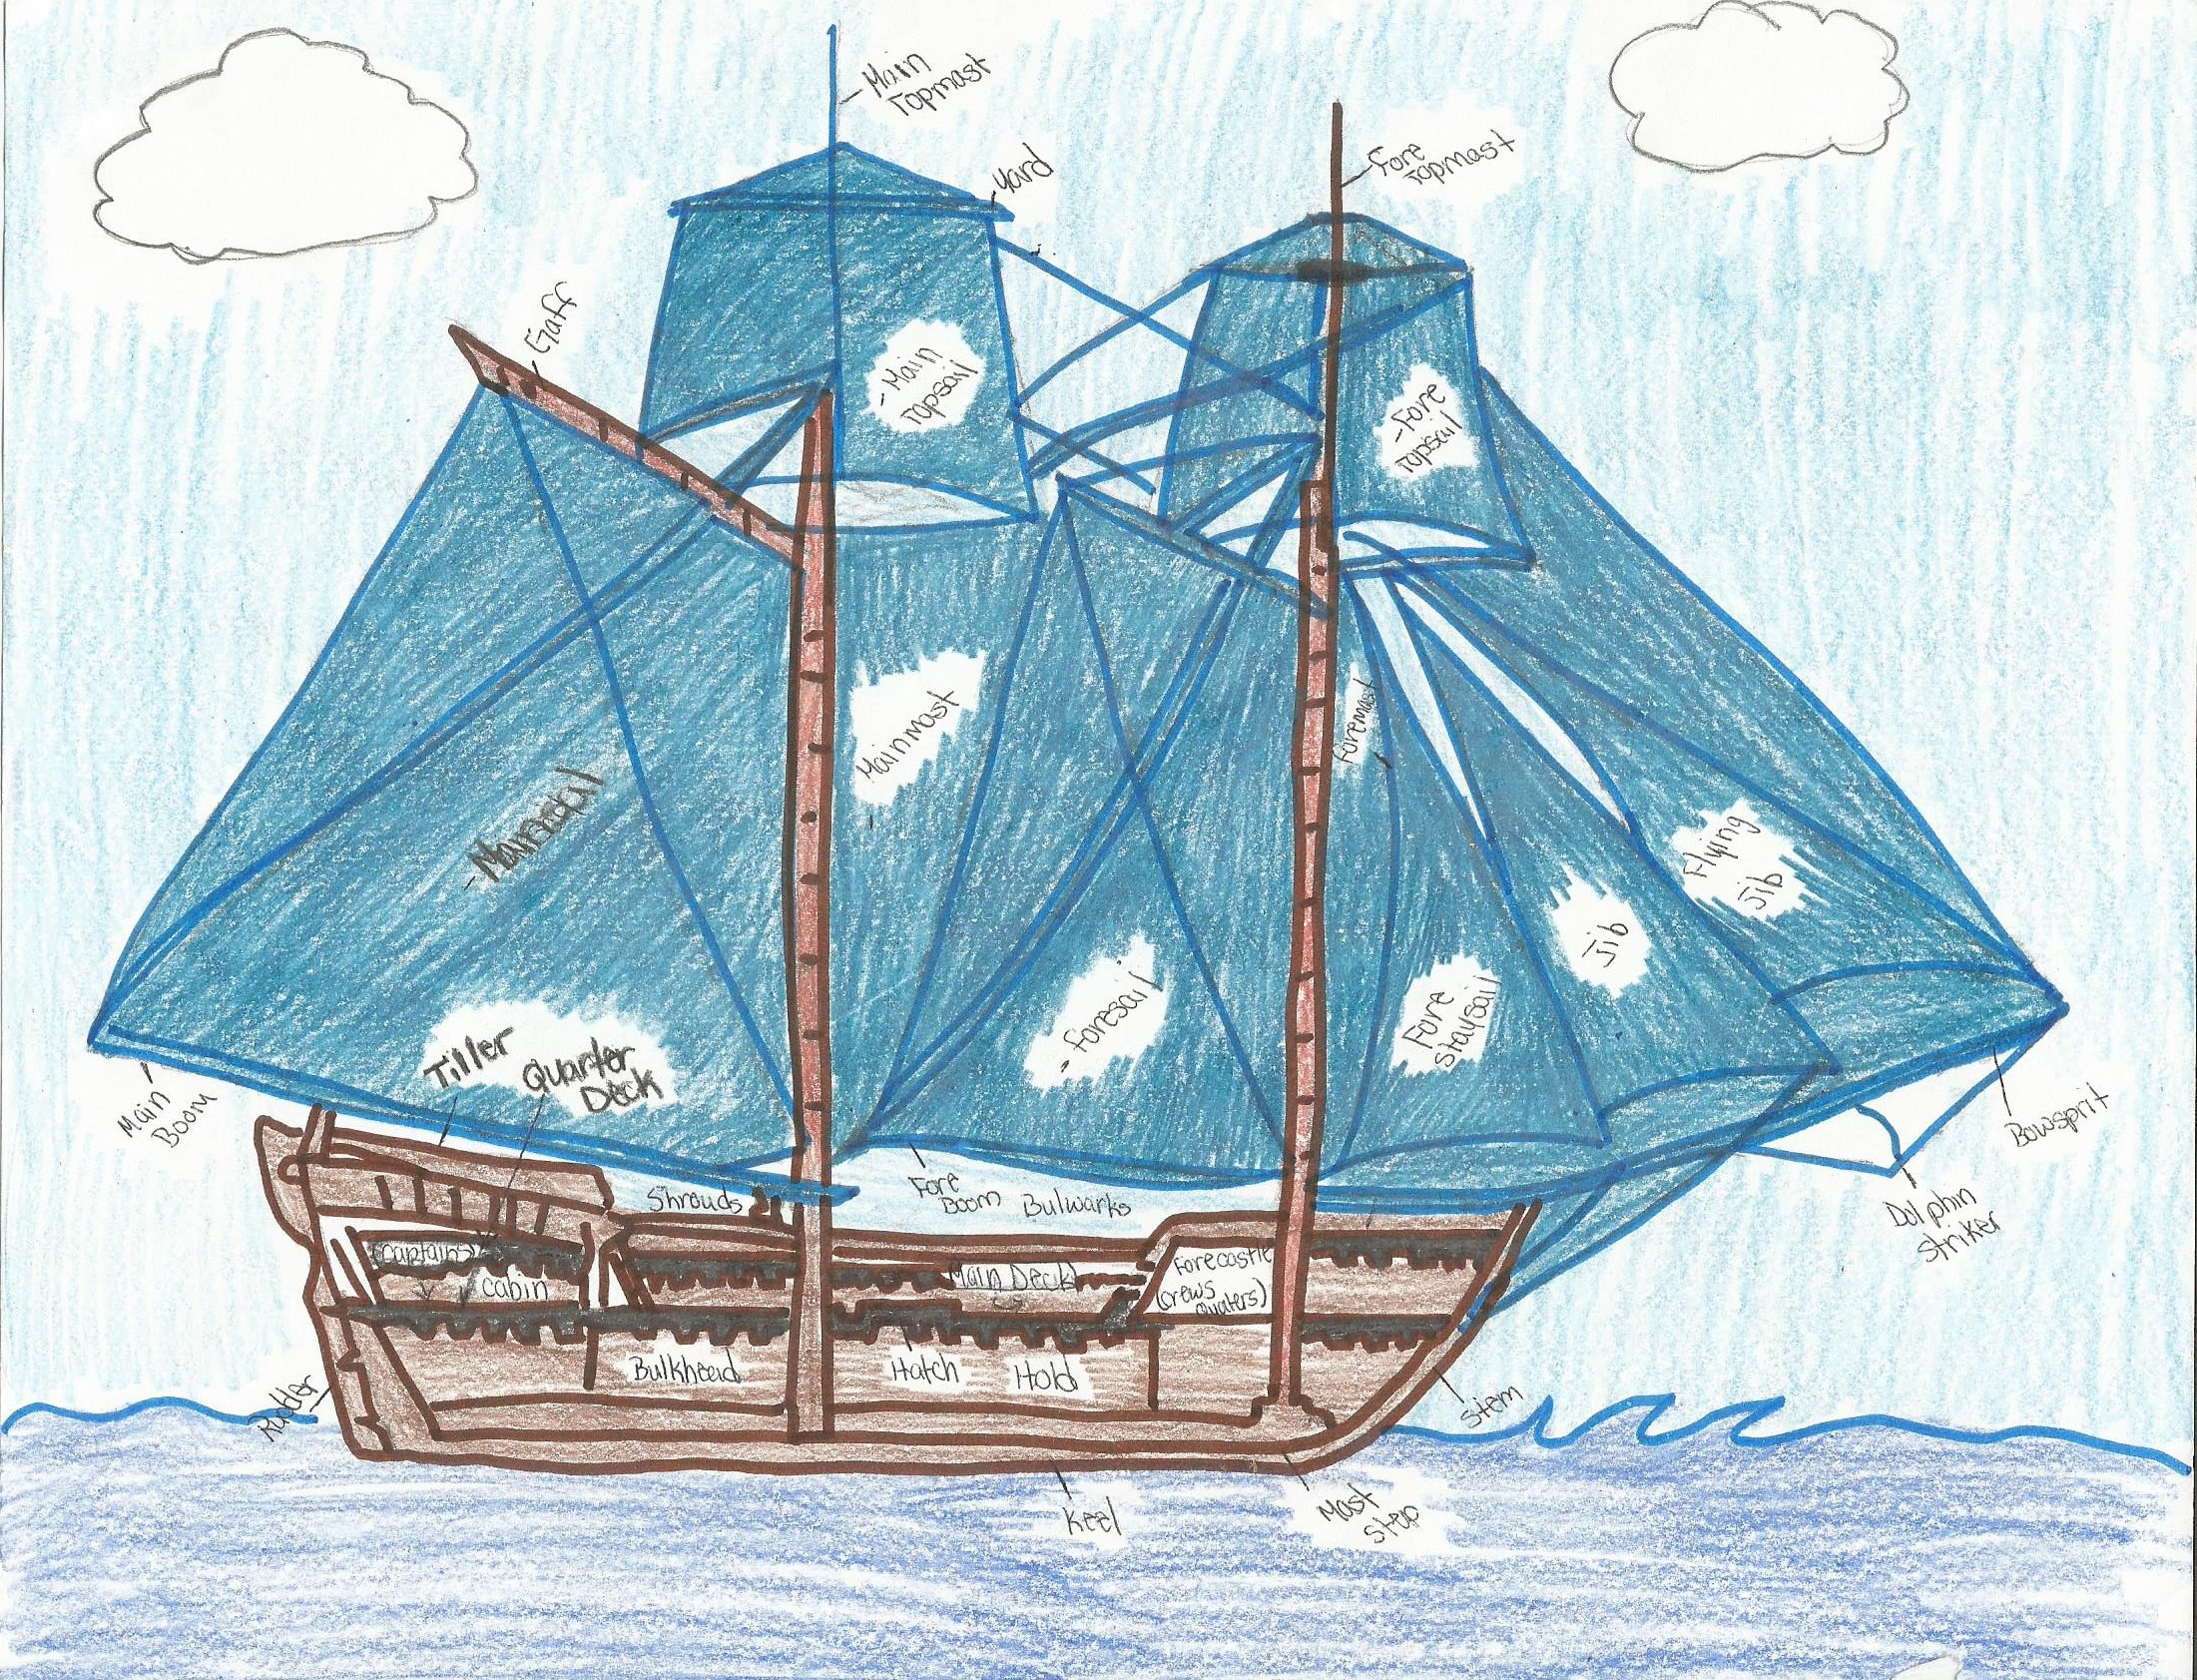 clipboards blog posts offer information on how students can make schooner diagram hms hispaniola from treasure island by robert louis stevenson